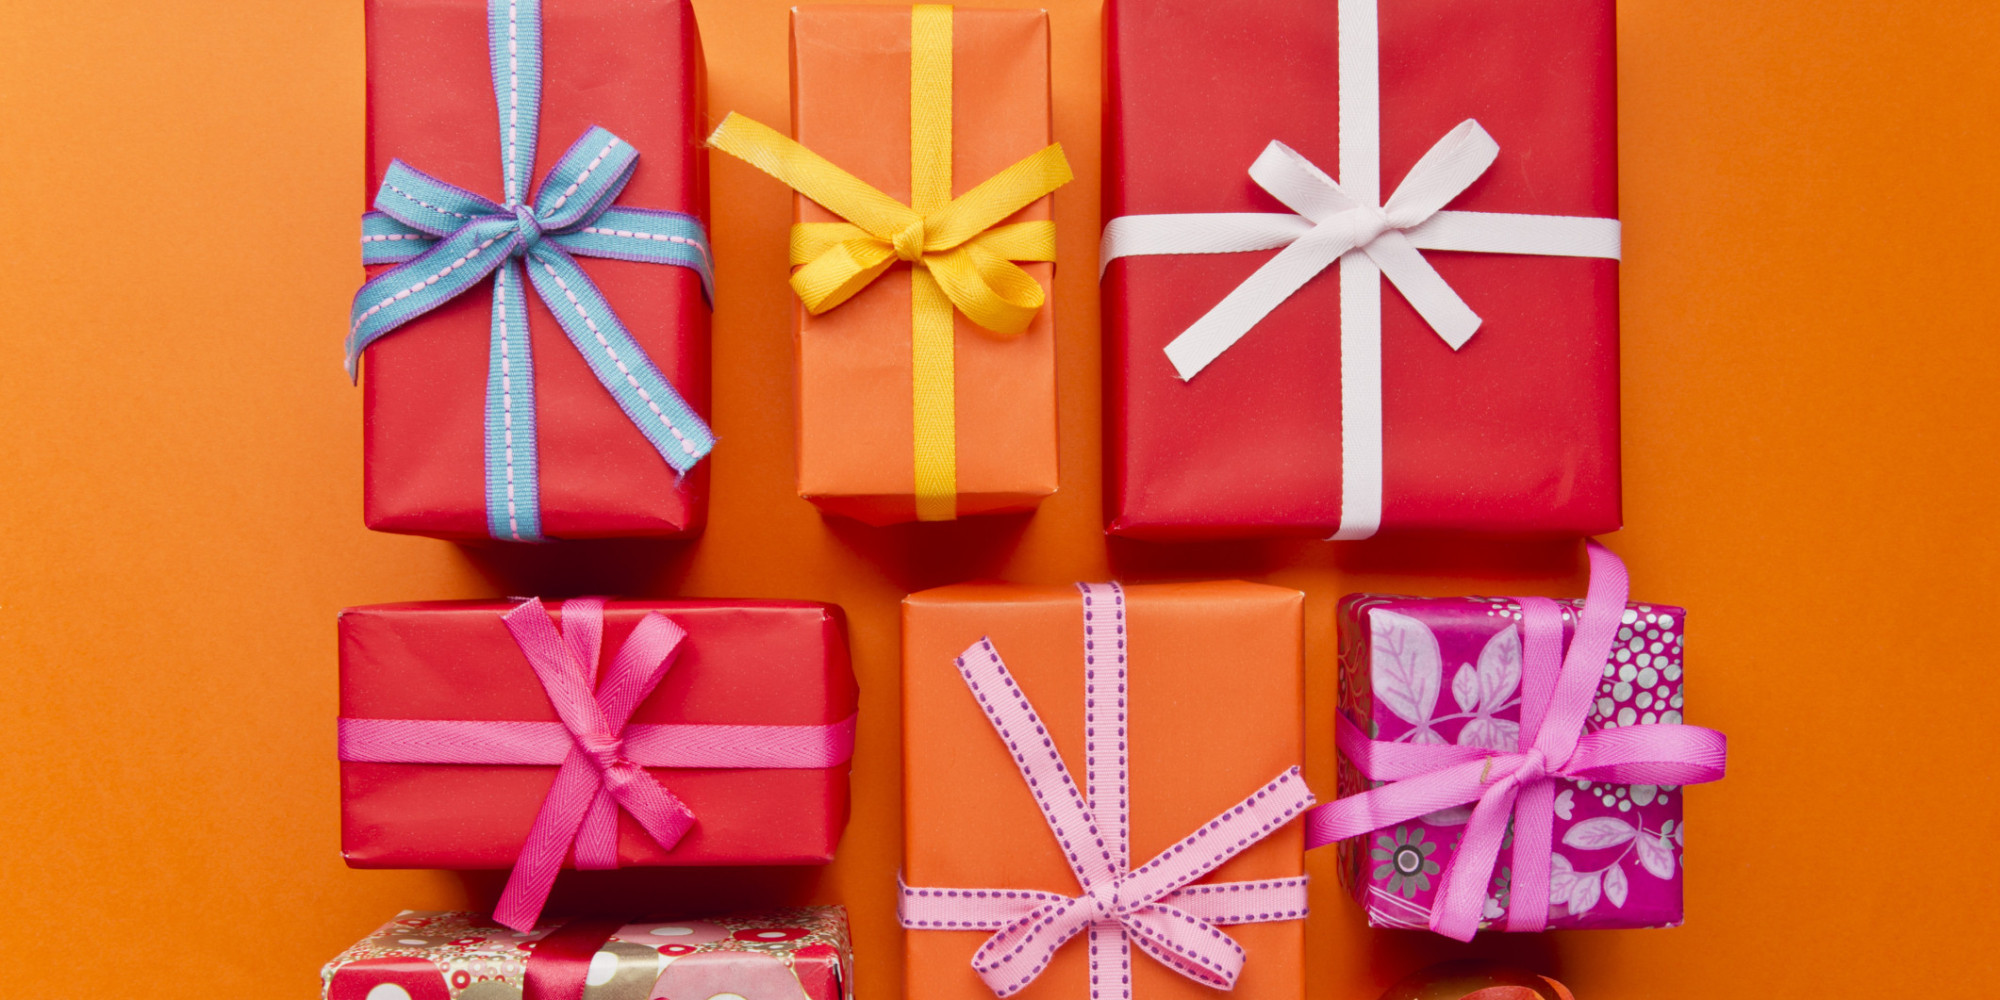 WRAP UR LOVED ONE'S GIFTS WITH BEAUTIFUL GIFT PACKING